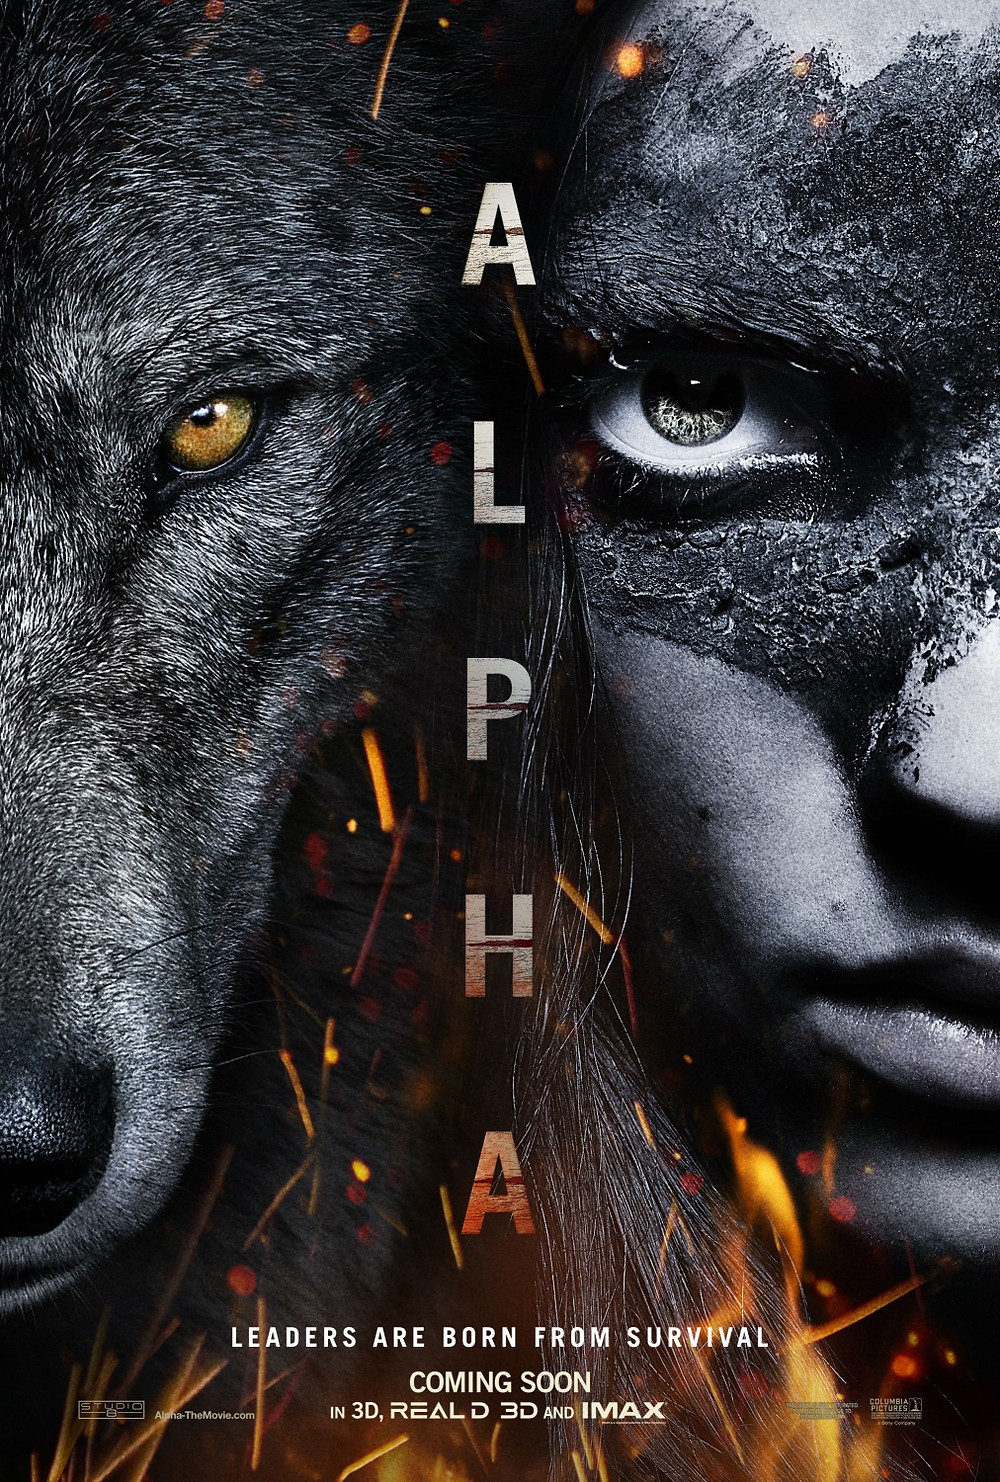 Movie Poster Wolf face and boy face